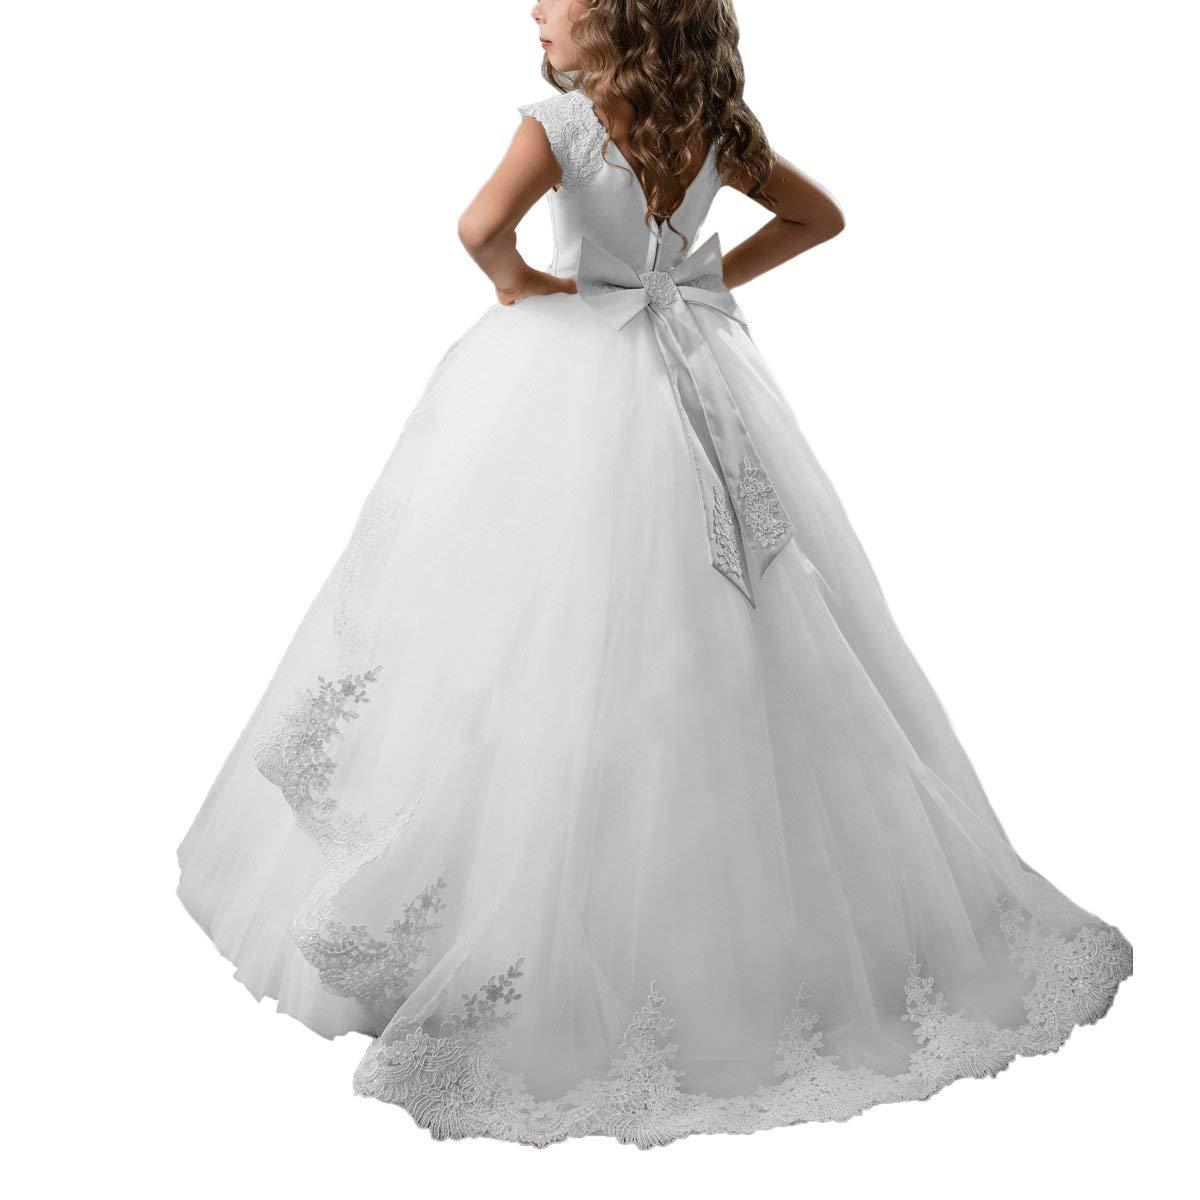 New Flower Girl White Satin Dress First Communion Wedding Pageant Formal AAA